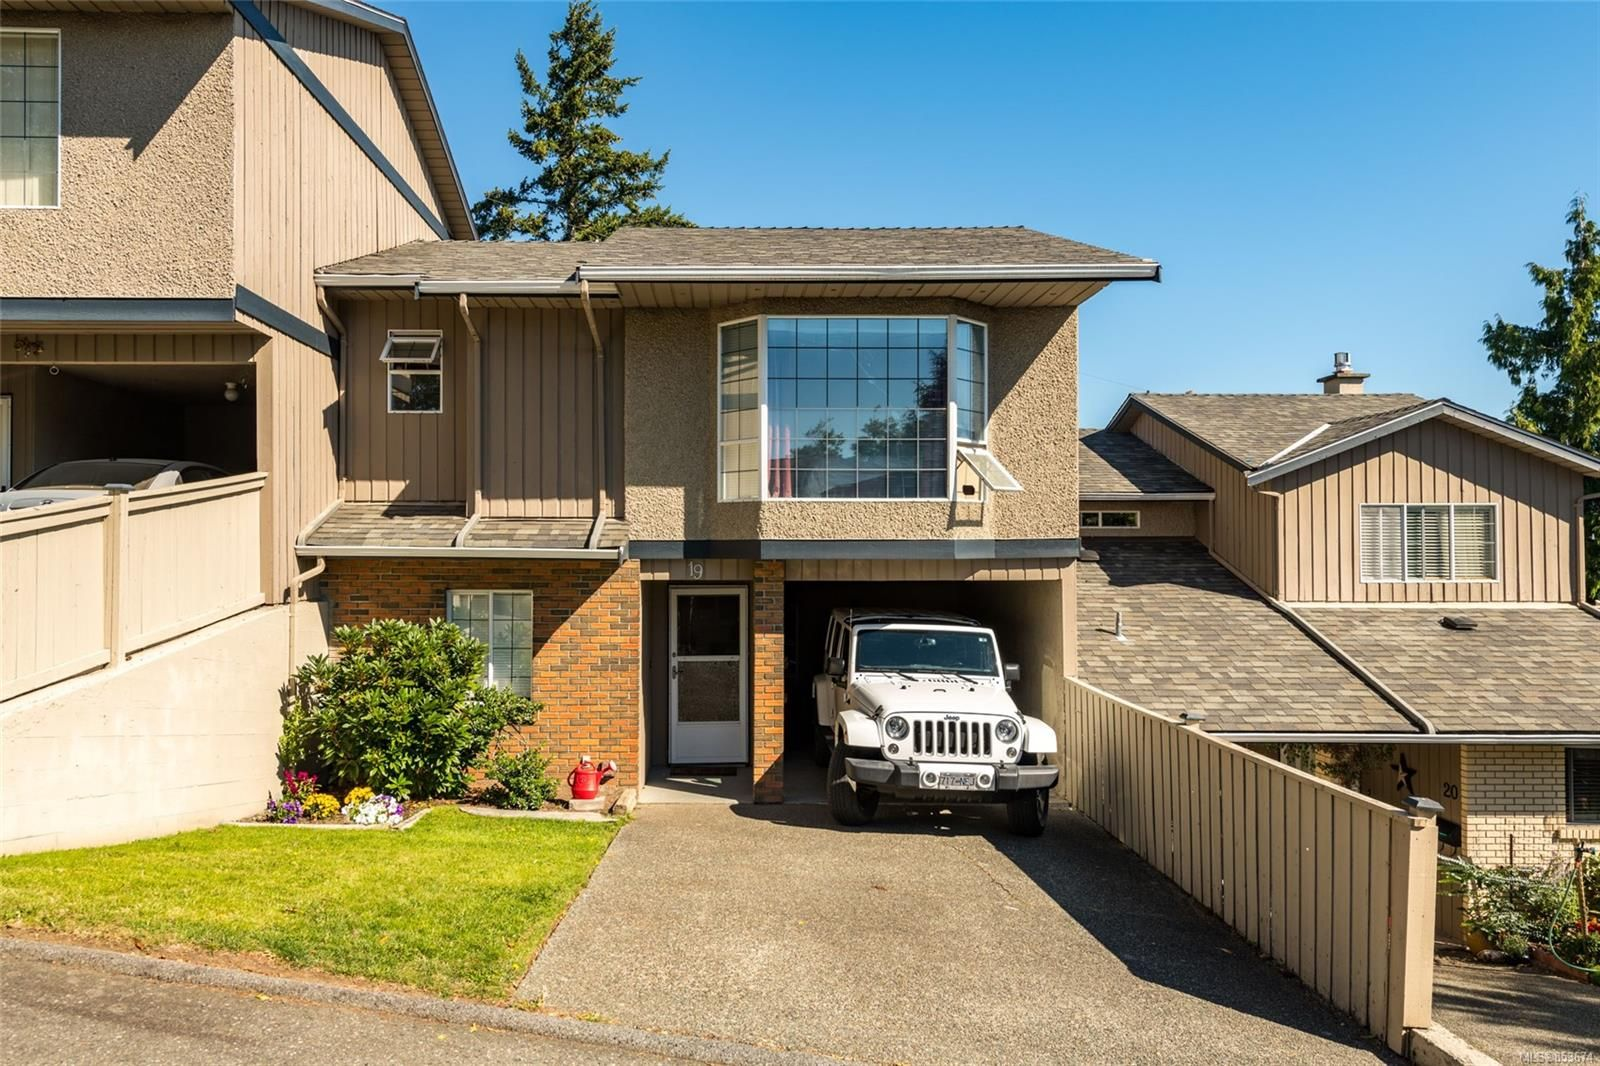 Main Photo: 19 3341 Mary Anne Cres in : Co Triangle Row/Townhouse for sale (Colwood)  : MLS®# 853674